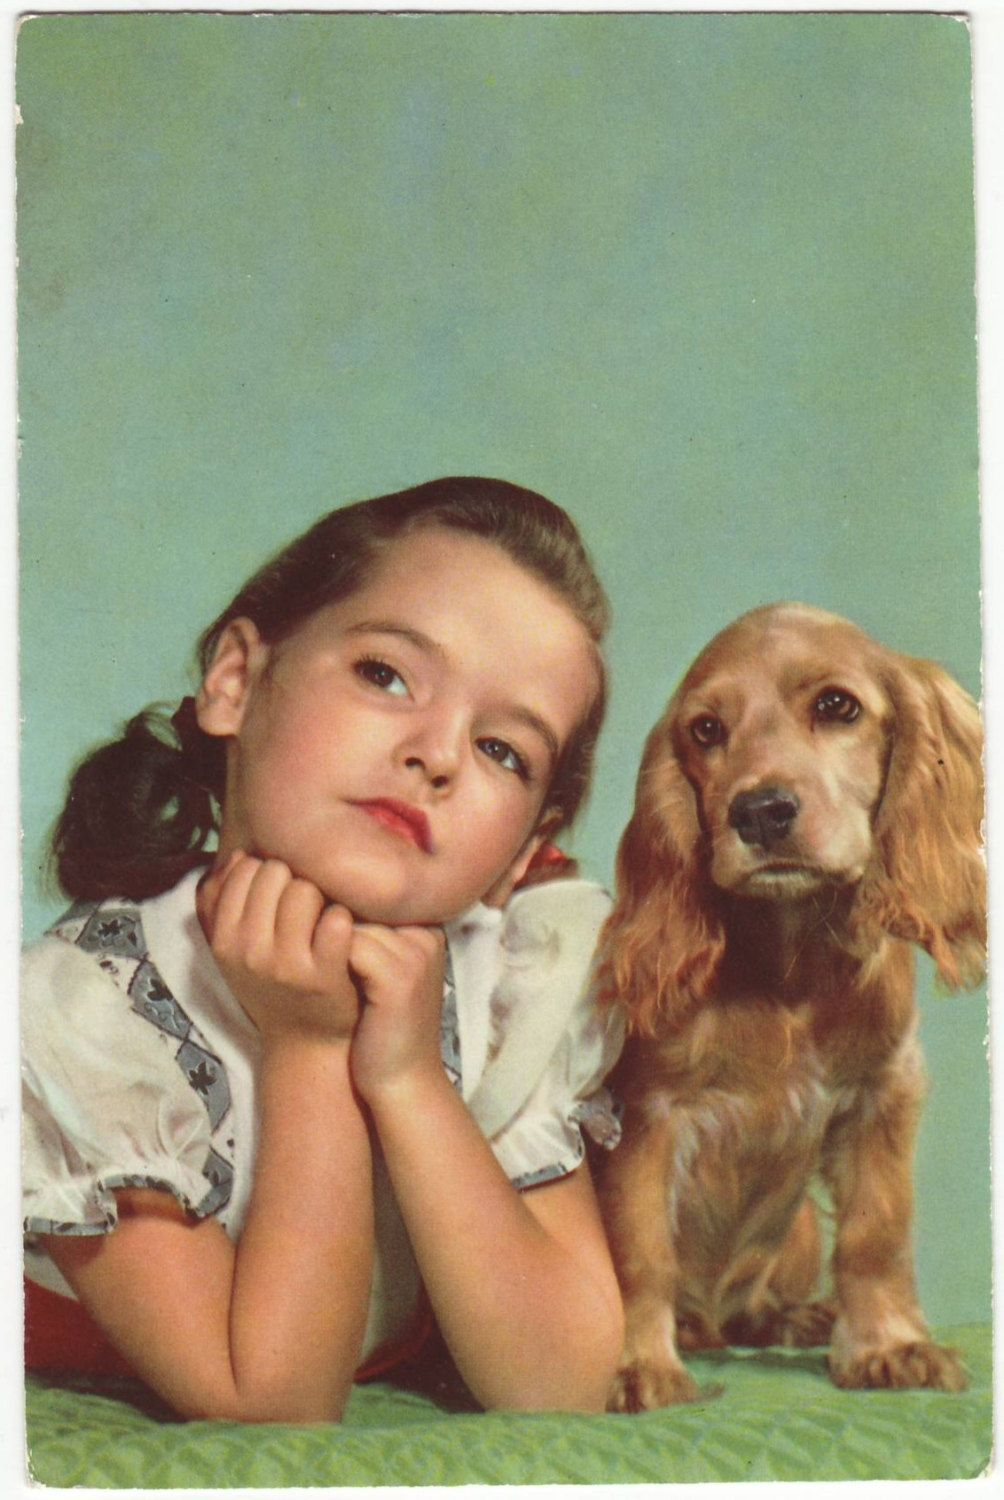 This Is An Antique Postcard From Italy Dated 1960 S It Has A Portrait Of A Little Girl And Her Cocker Spanie Cocker Spaniel Pet People Cocker Spaniel Puppies